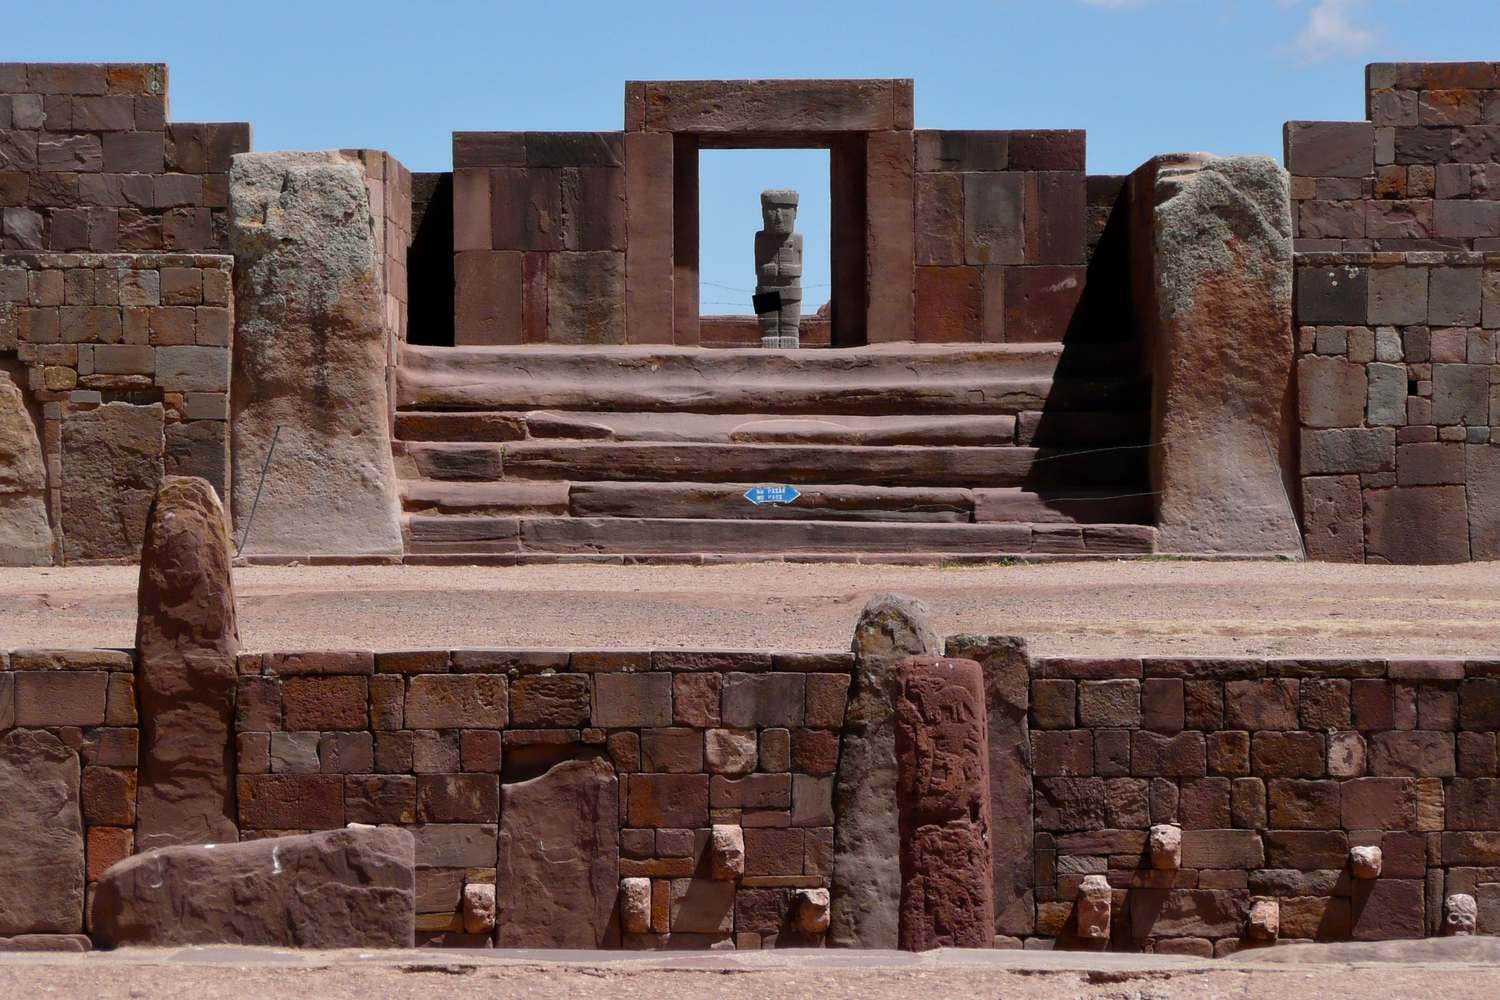 bolivia-tiwanaku-pre-columbian-archaeological-site